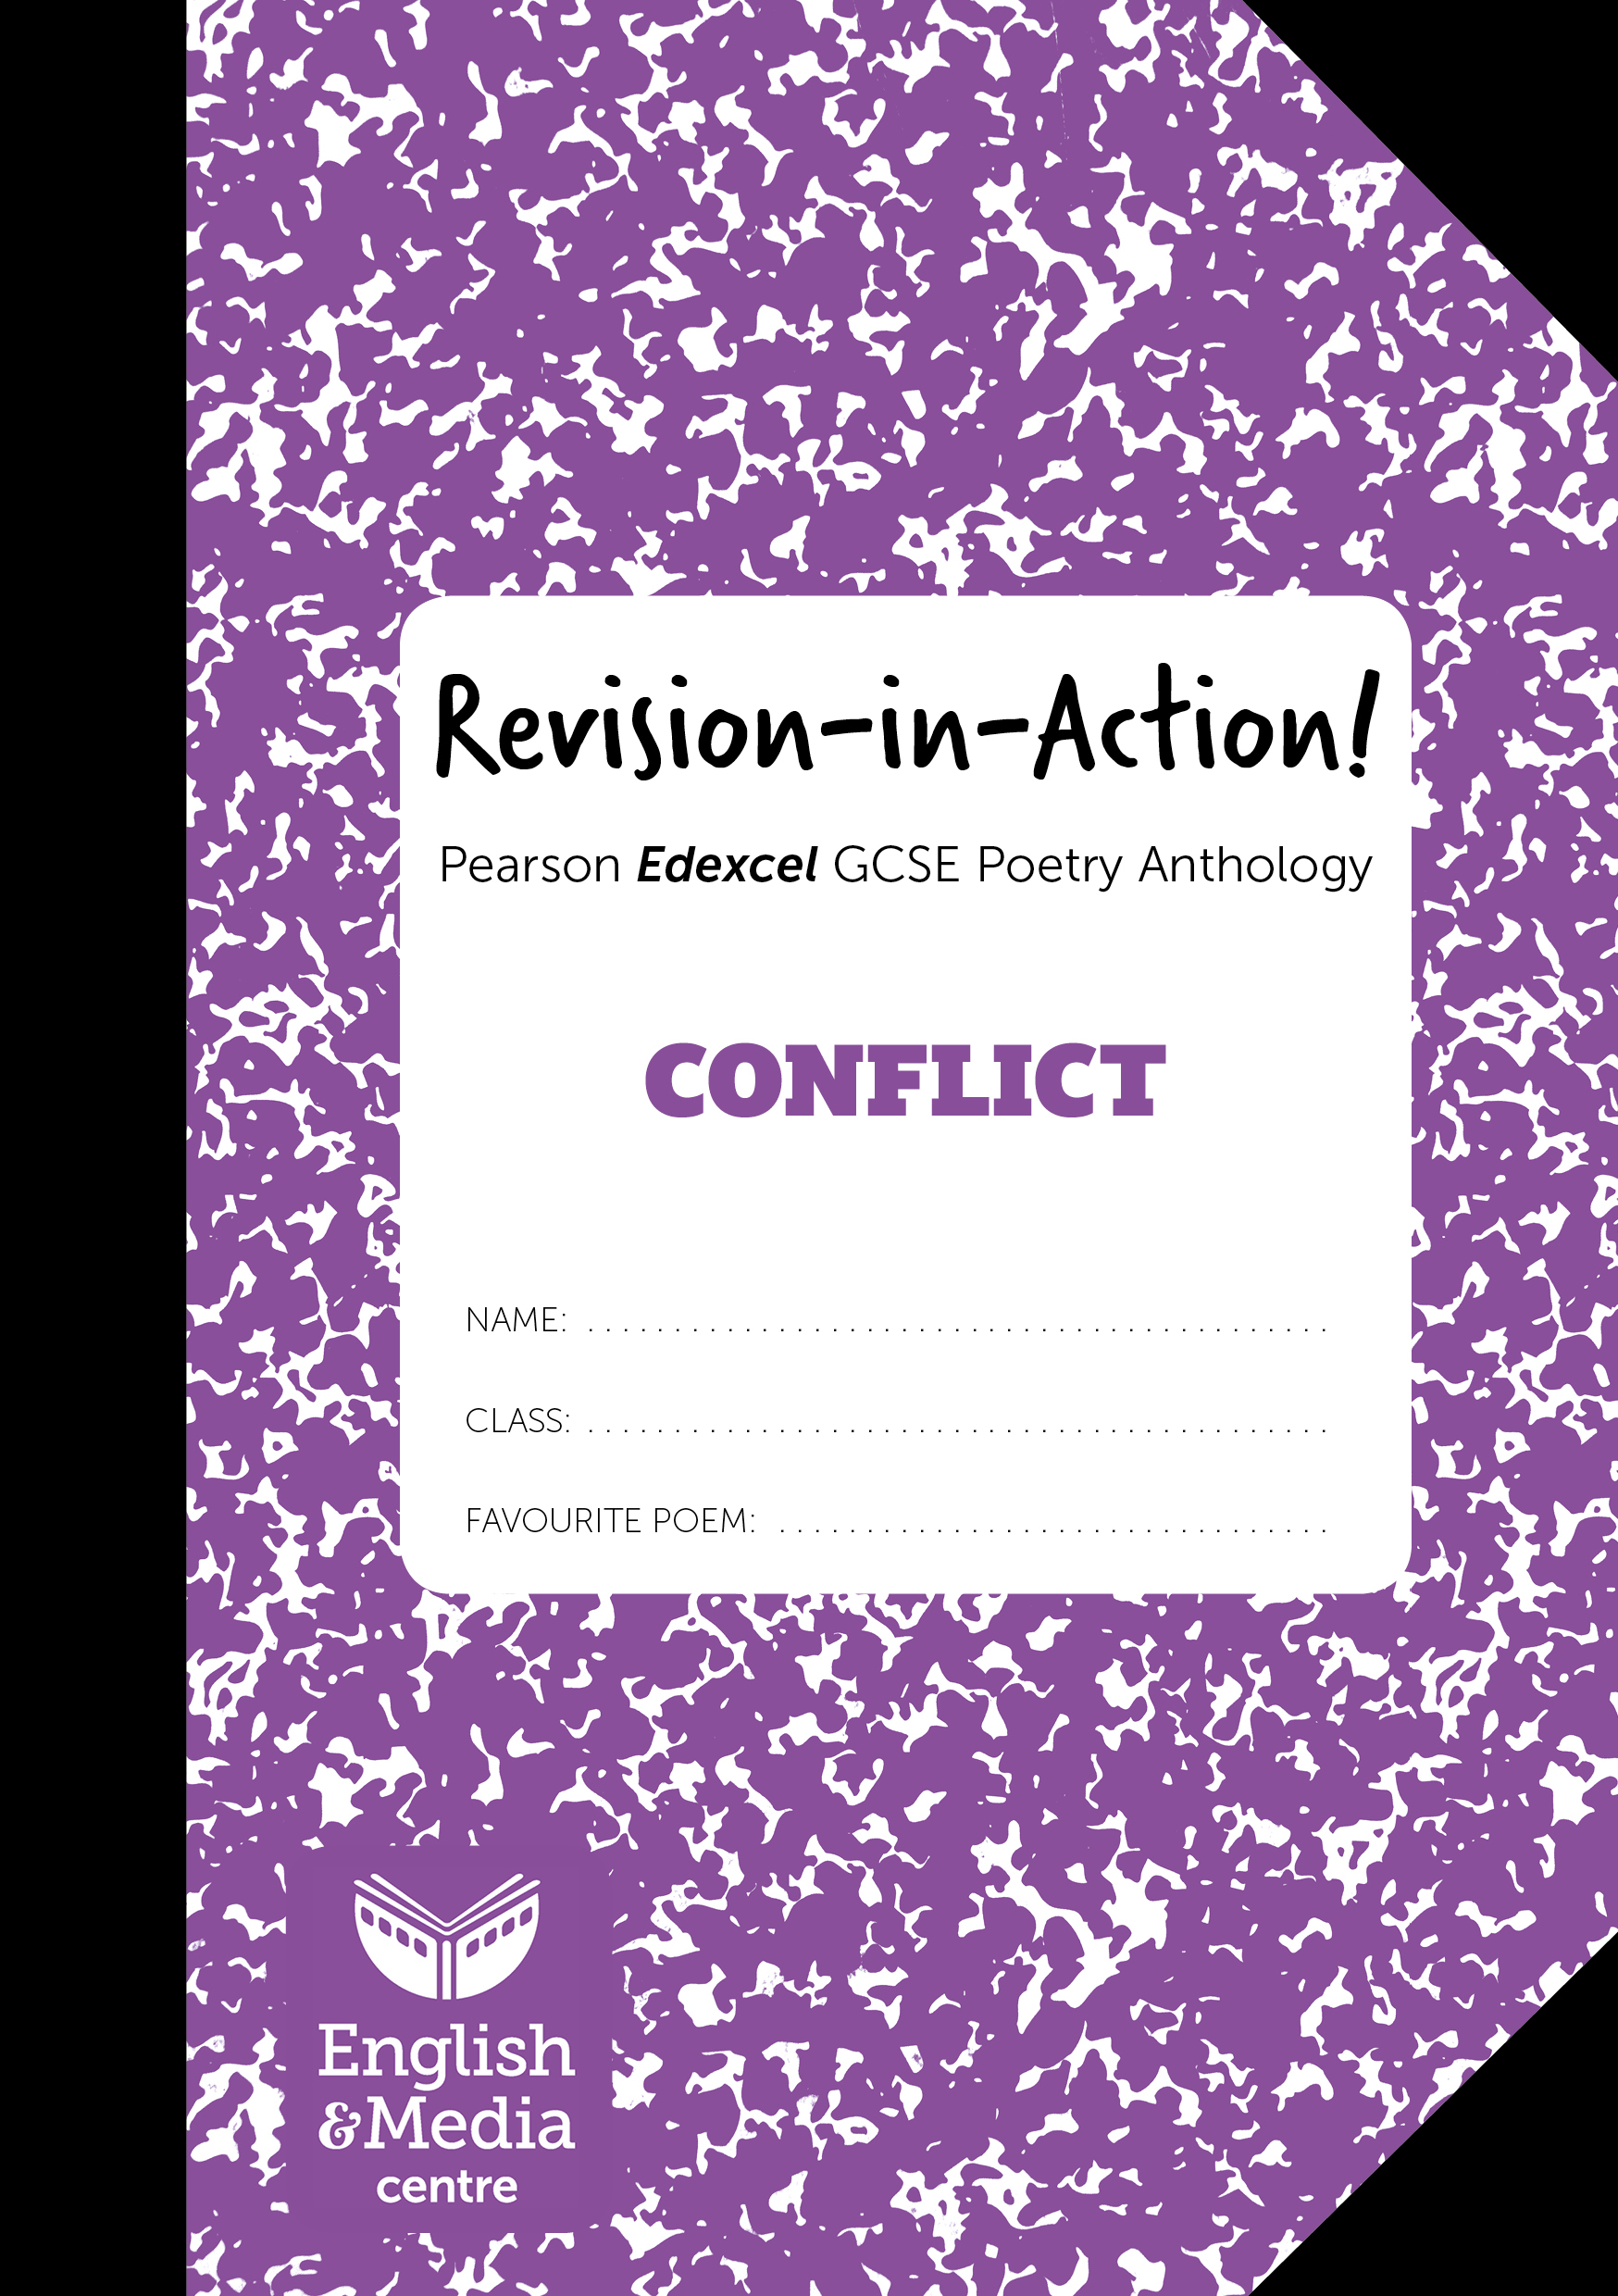 Cover image for Revision-in-Action – Edexcel Conflict  (6+ sets of 10 workbooks = £1 per copy)